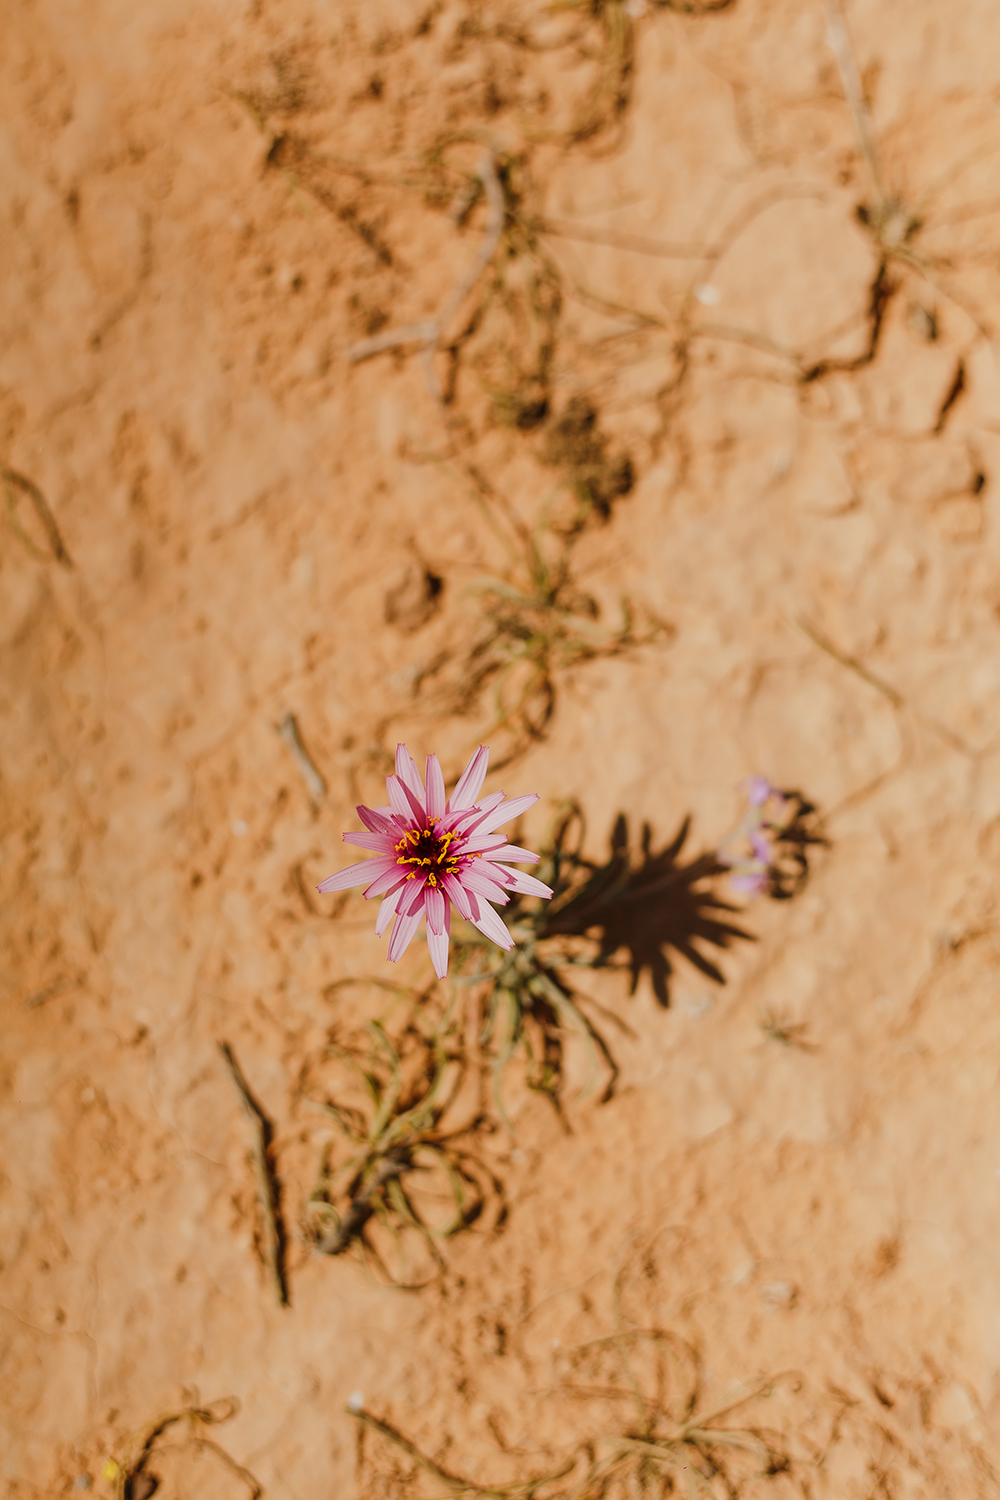 SN2_1530-sophie-narses-photographe-Tunisie-Voyage-book-shooting-geneve-mariage-suisse-famille-animaux-tirages-art-cours-photo-paysages-desert